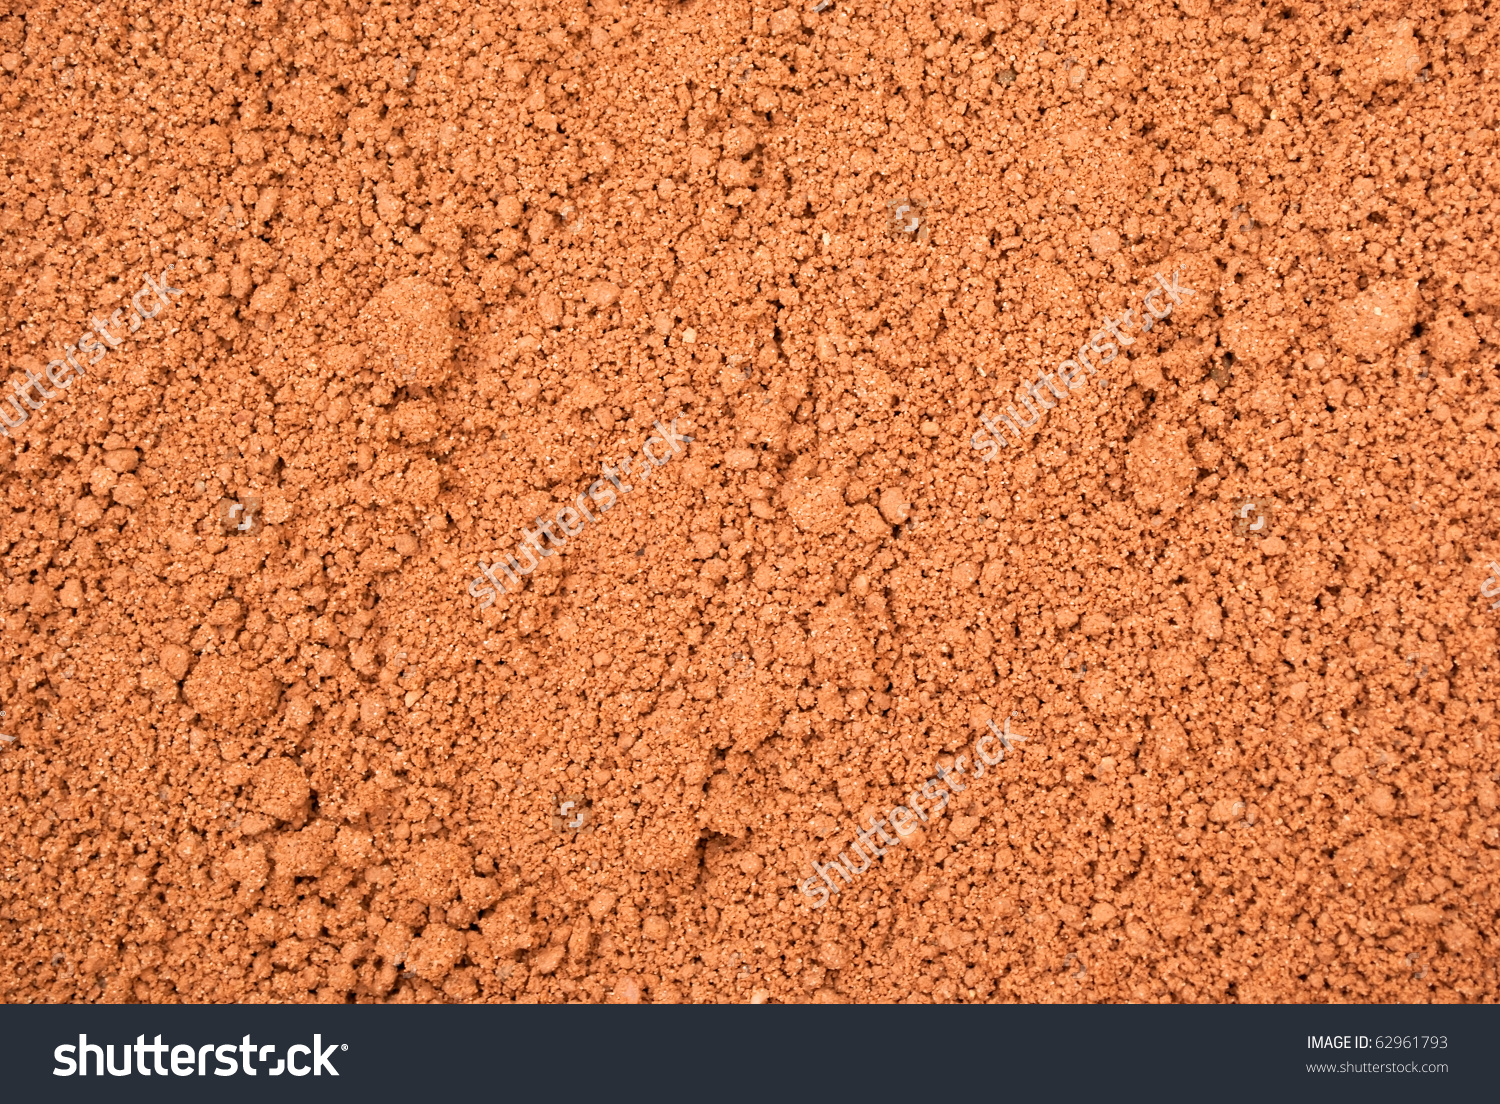 Clay Soil Background Stock Photo 62961793.